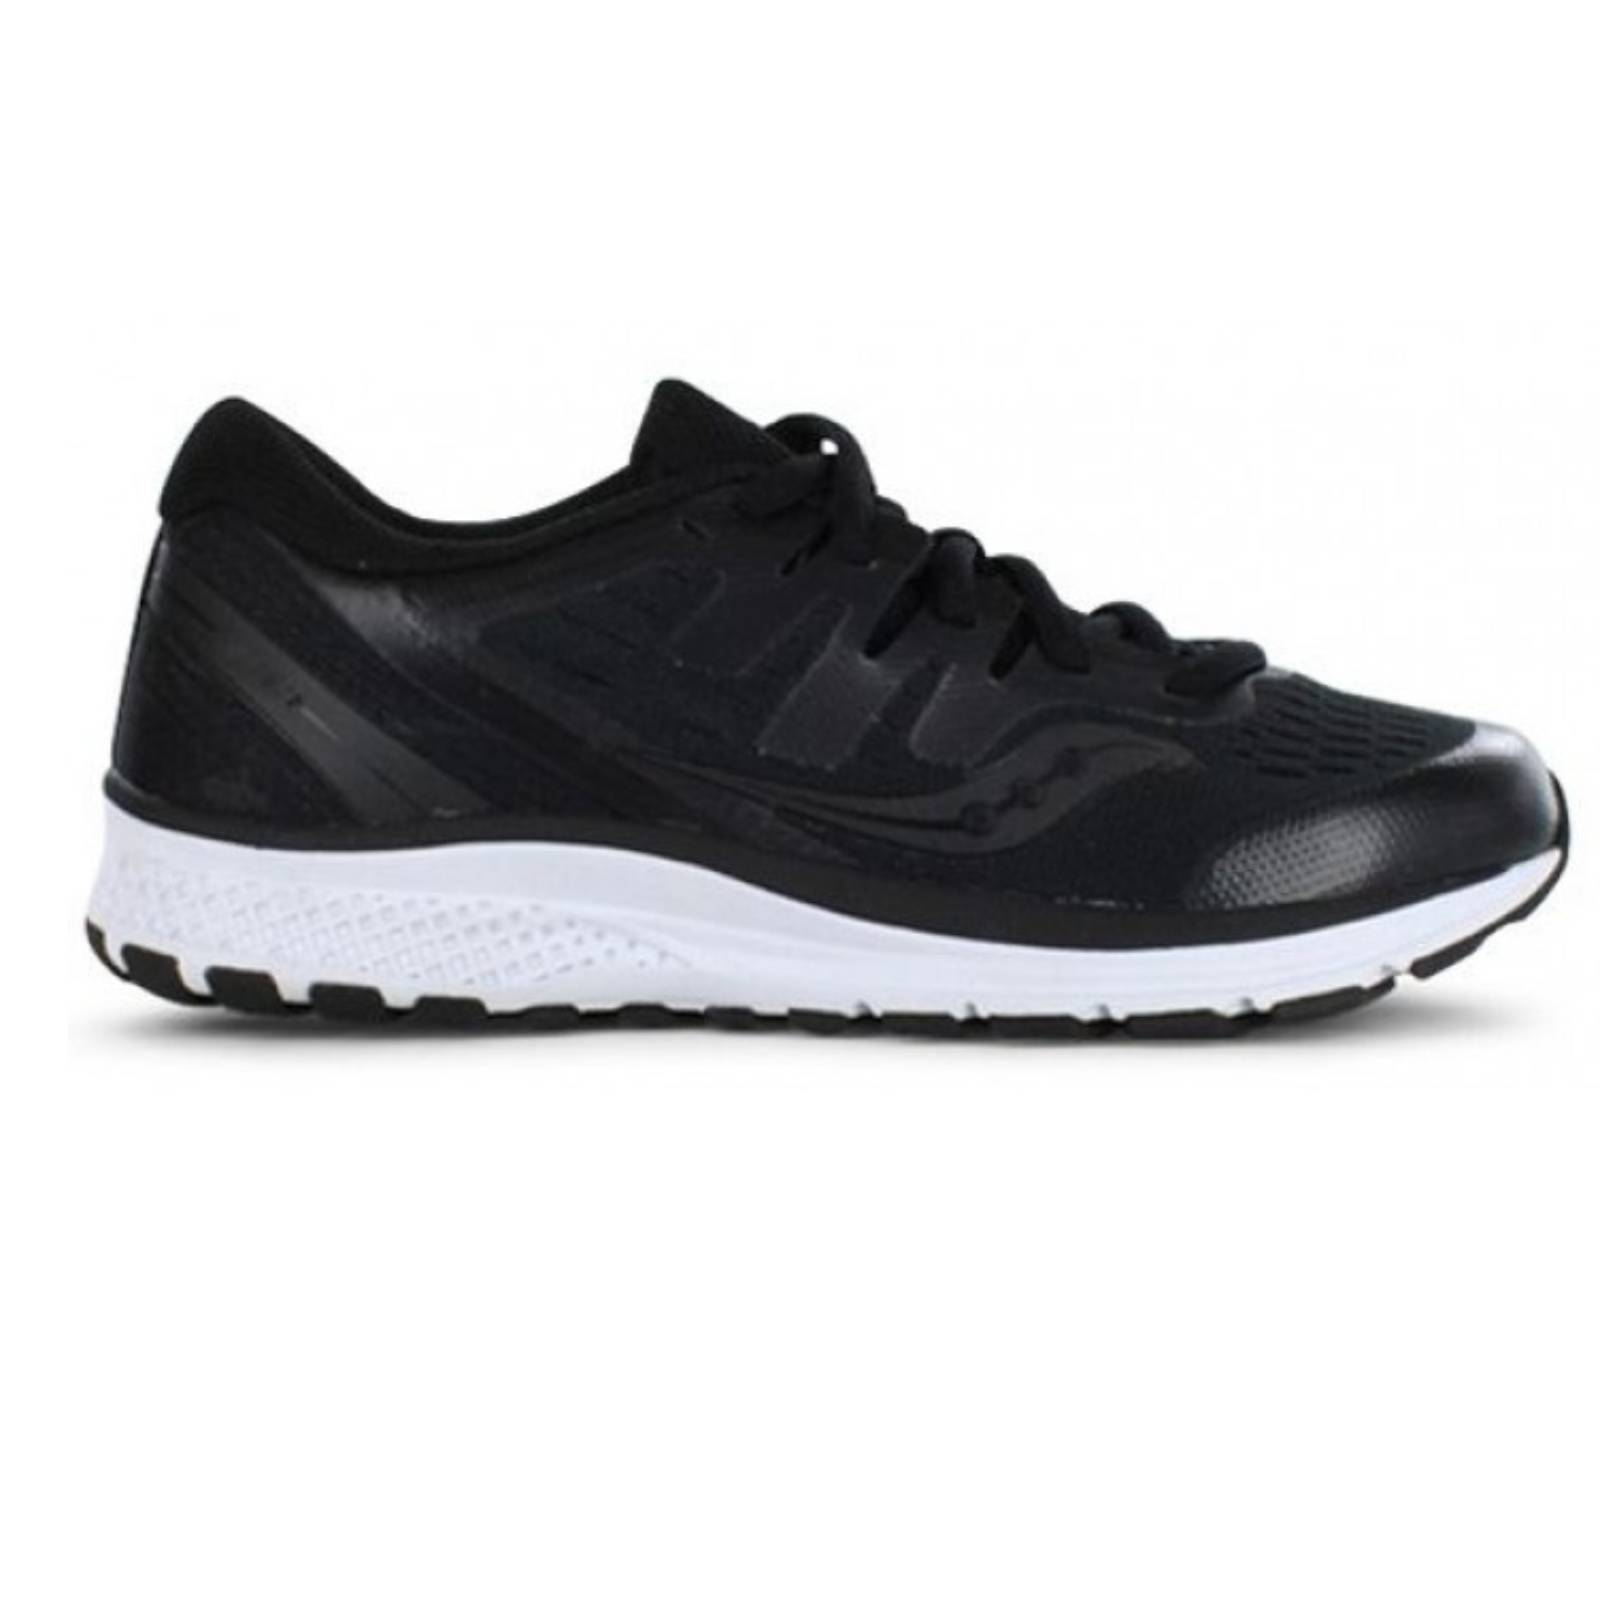 c78f53e7d2 Saucony Kids Youth S GUIDE ISO 2 Sneakers Runners Medium Width Boys -  Black/White